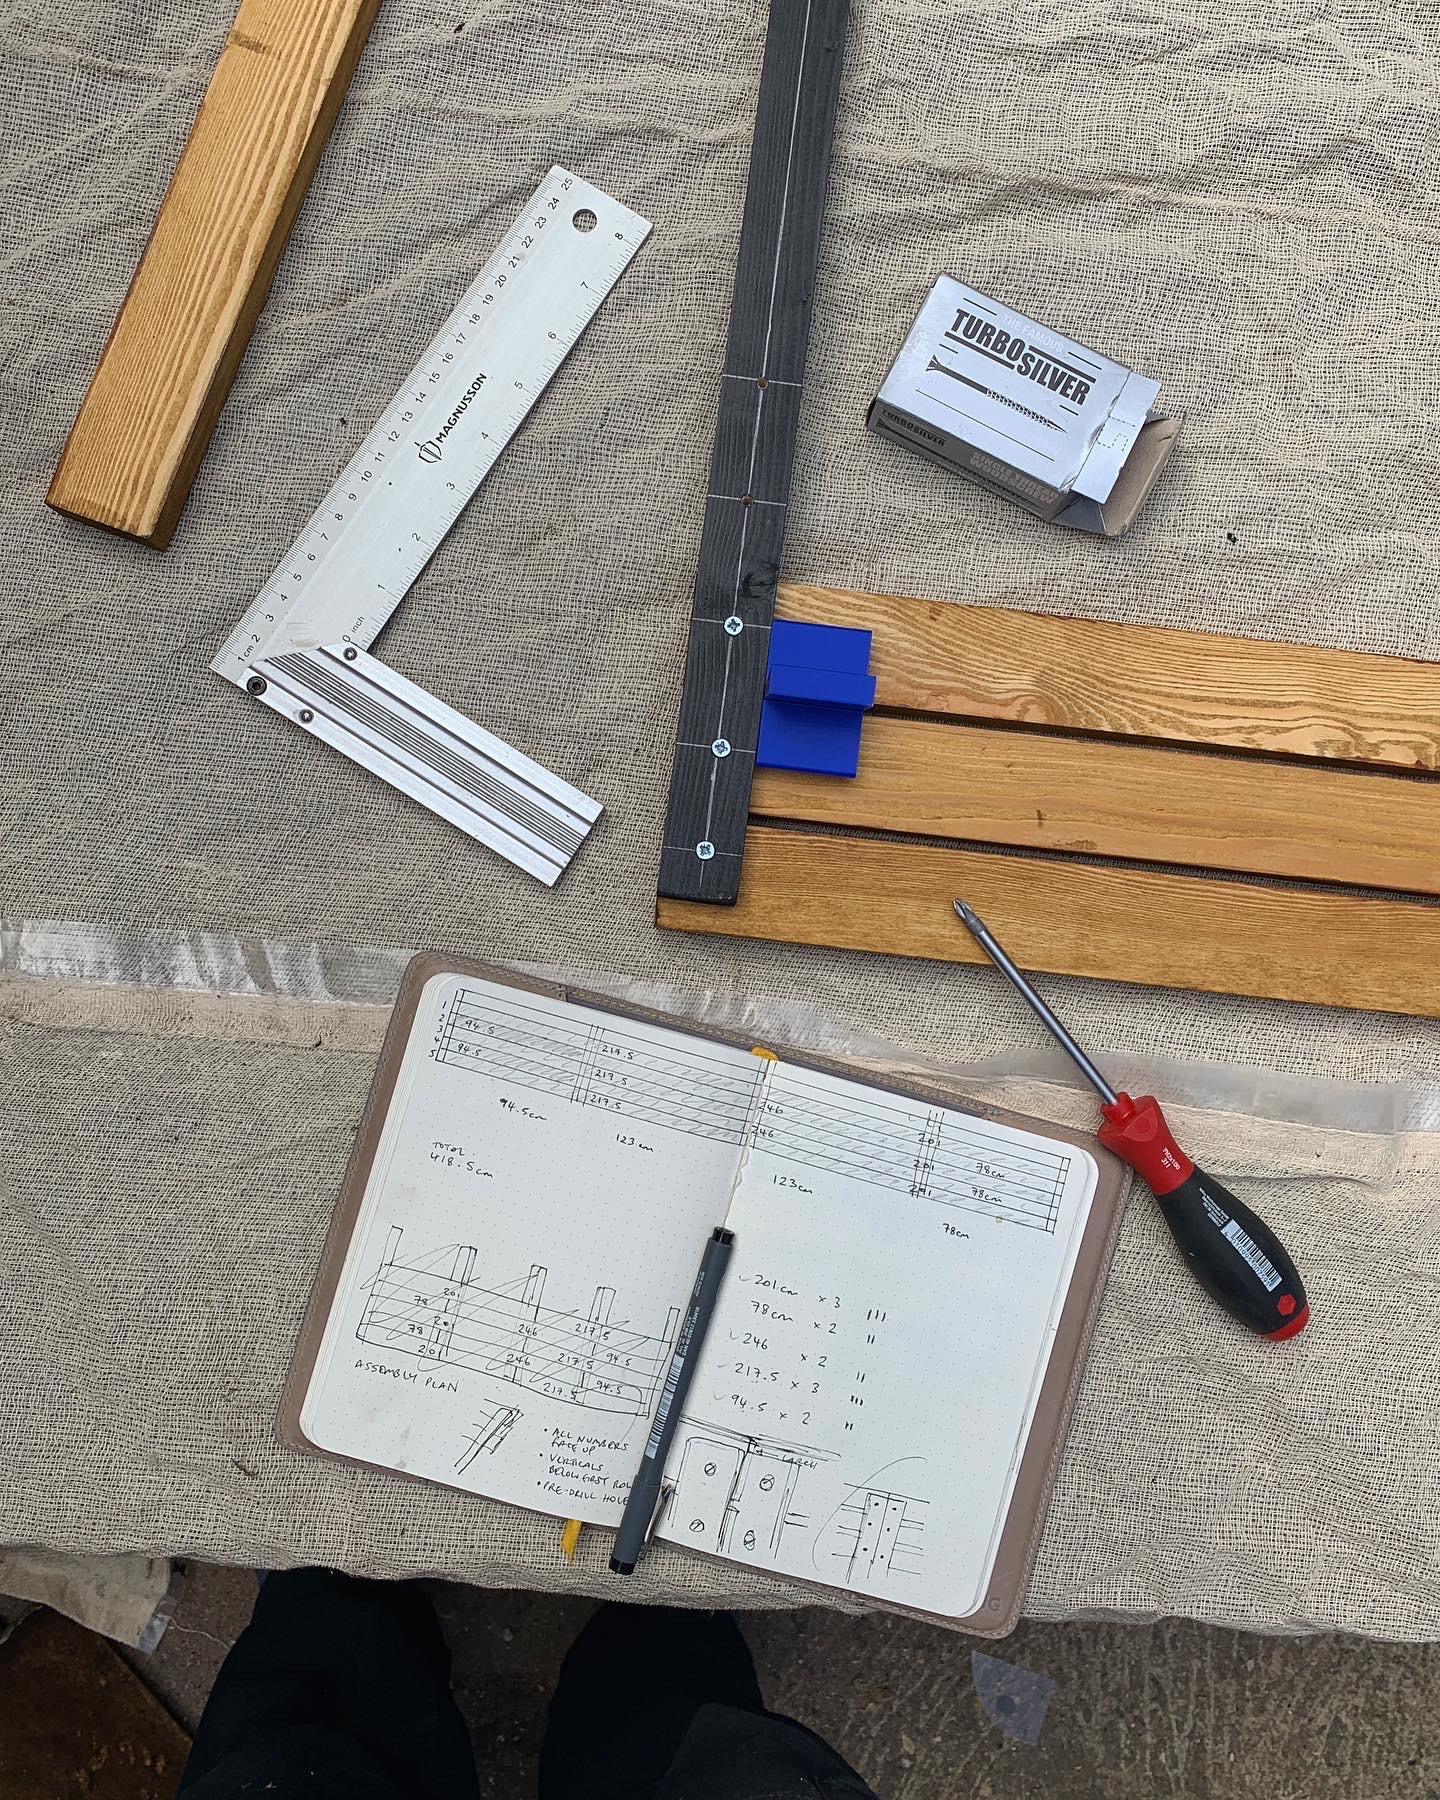 Tools and diagrams